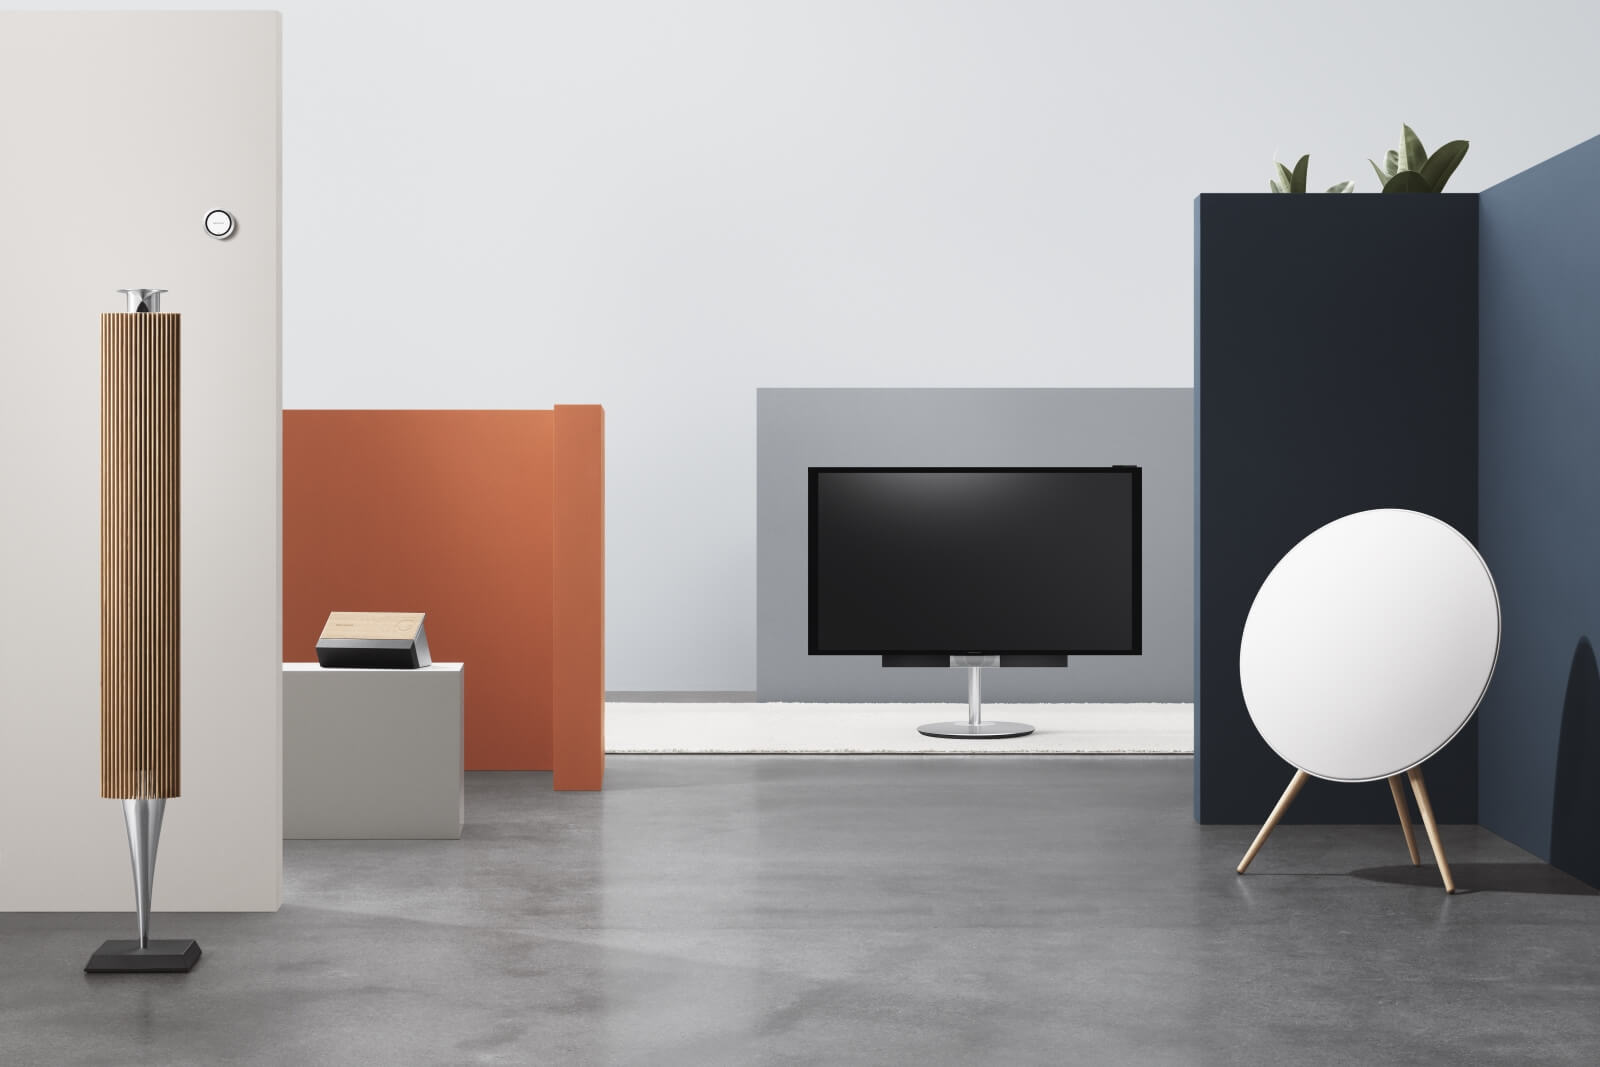 BeoLink Multiroom combines your Bang & Olufsen products into a wireless system